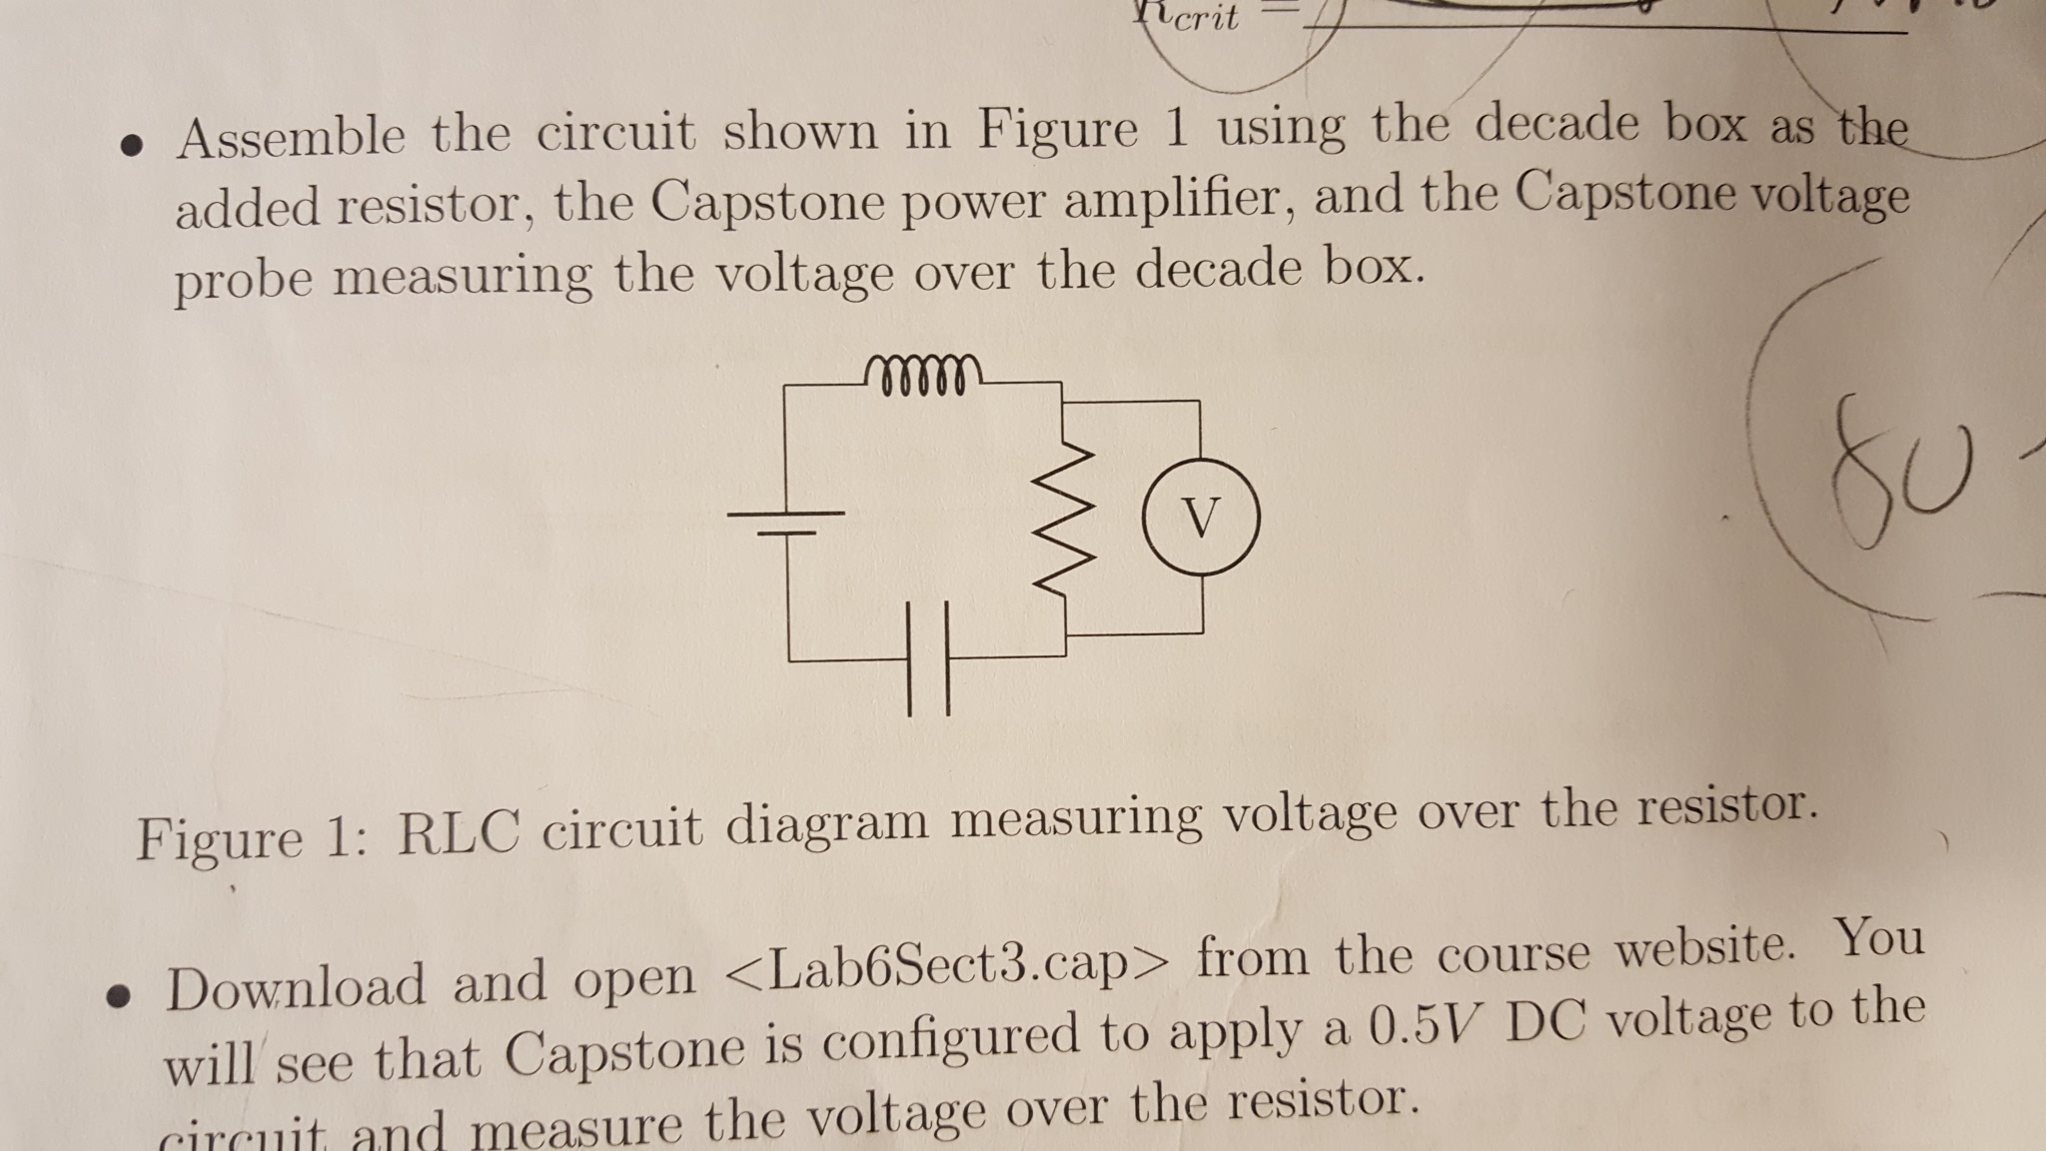 Solved It Is Rlc Circuit And Capacitance C 1021uf Indu Inductance Measuring Crit Assemble The Shown In Figure 1 Using